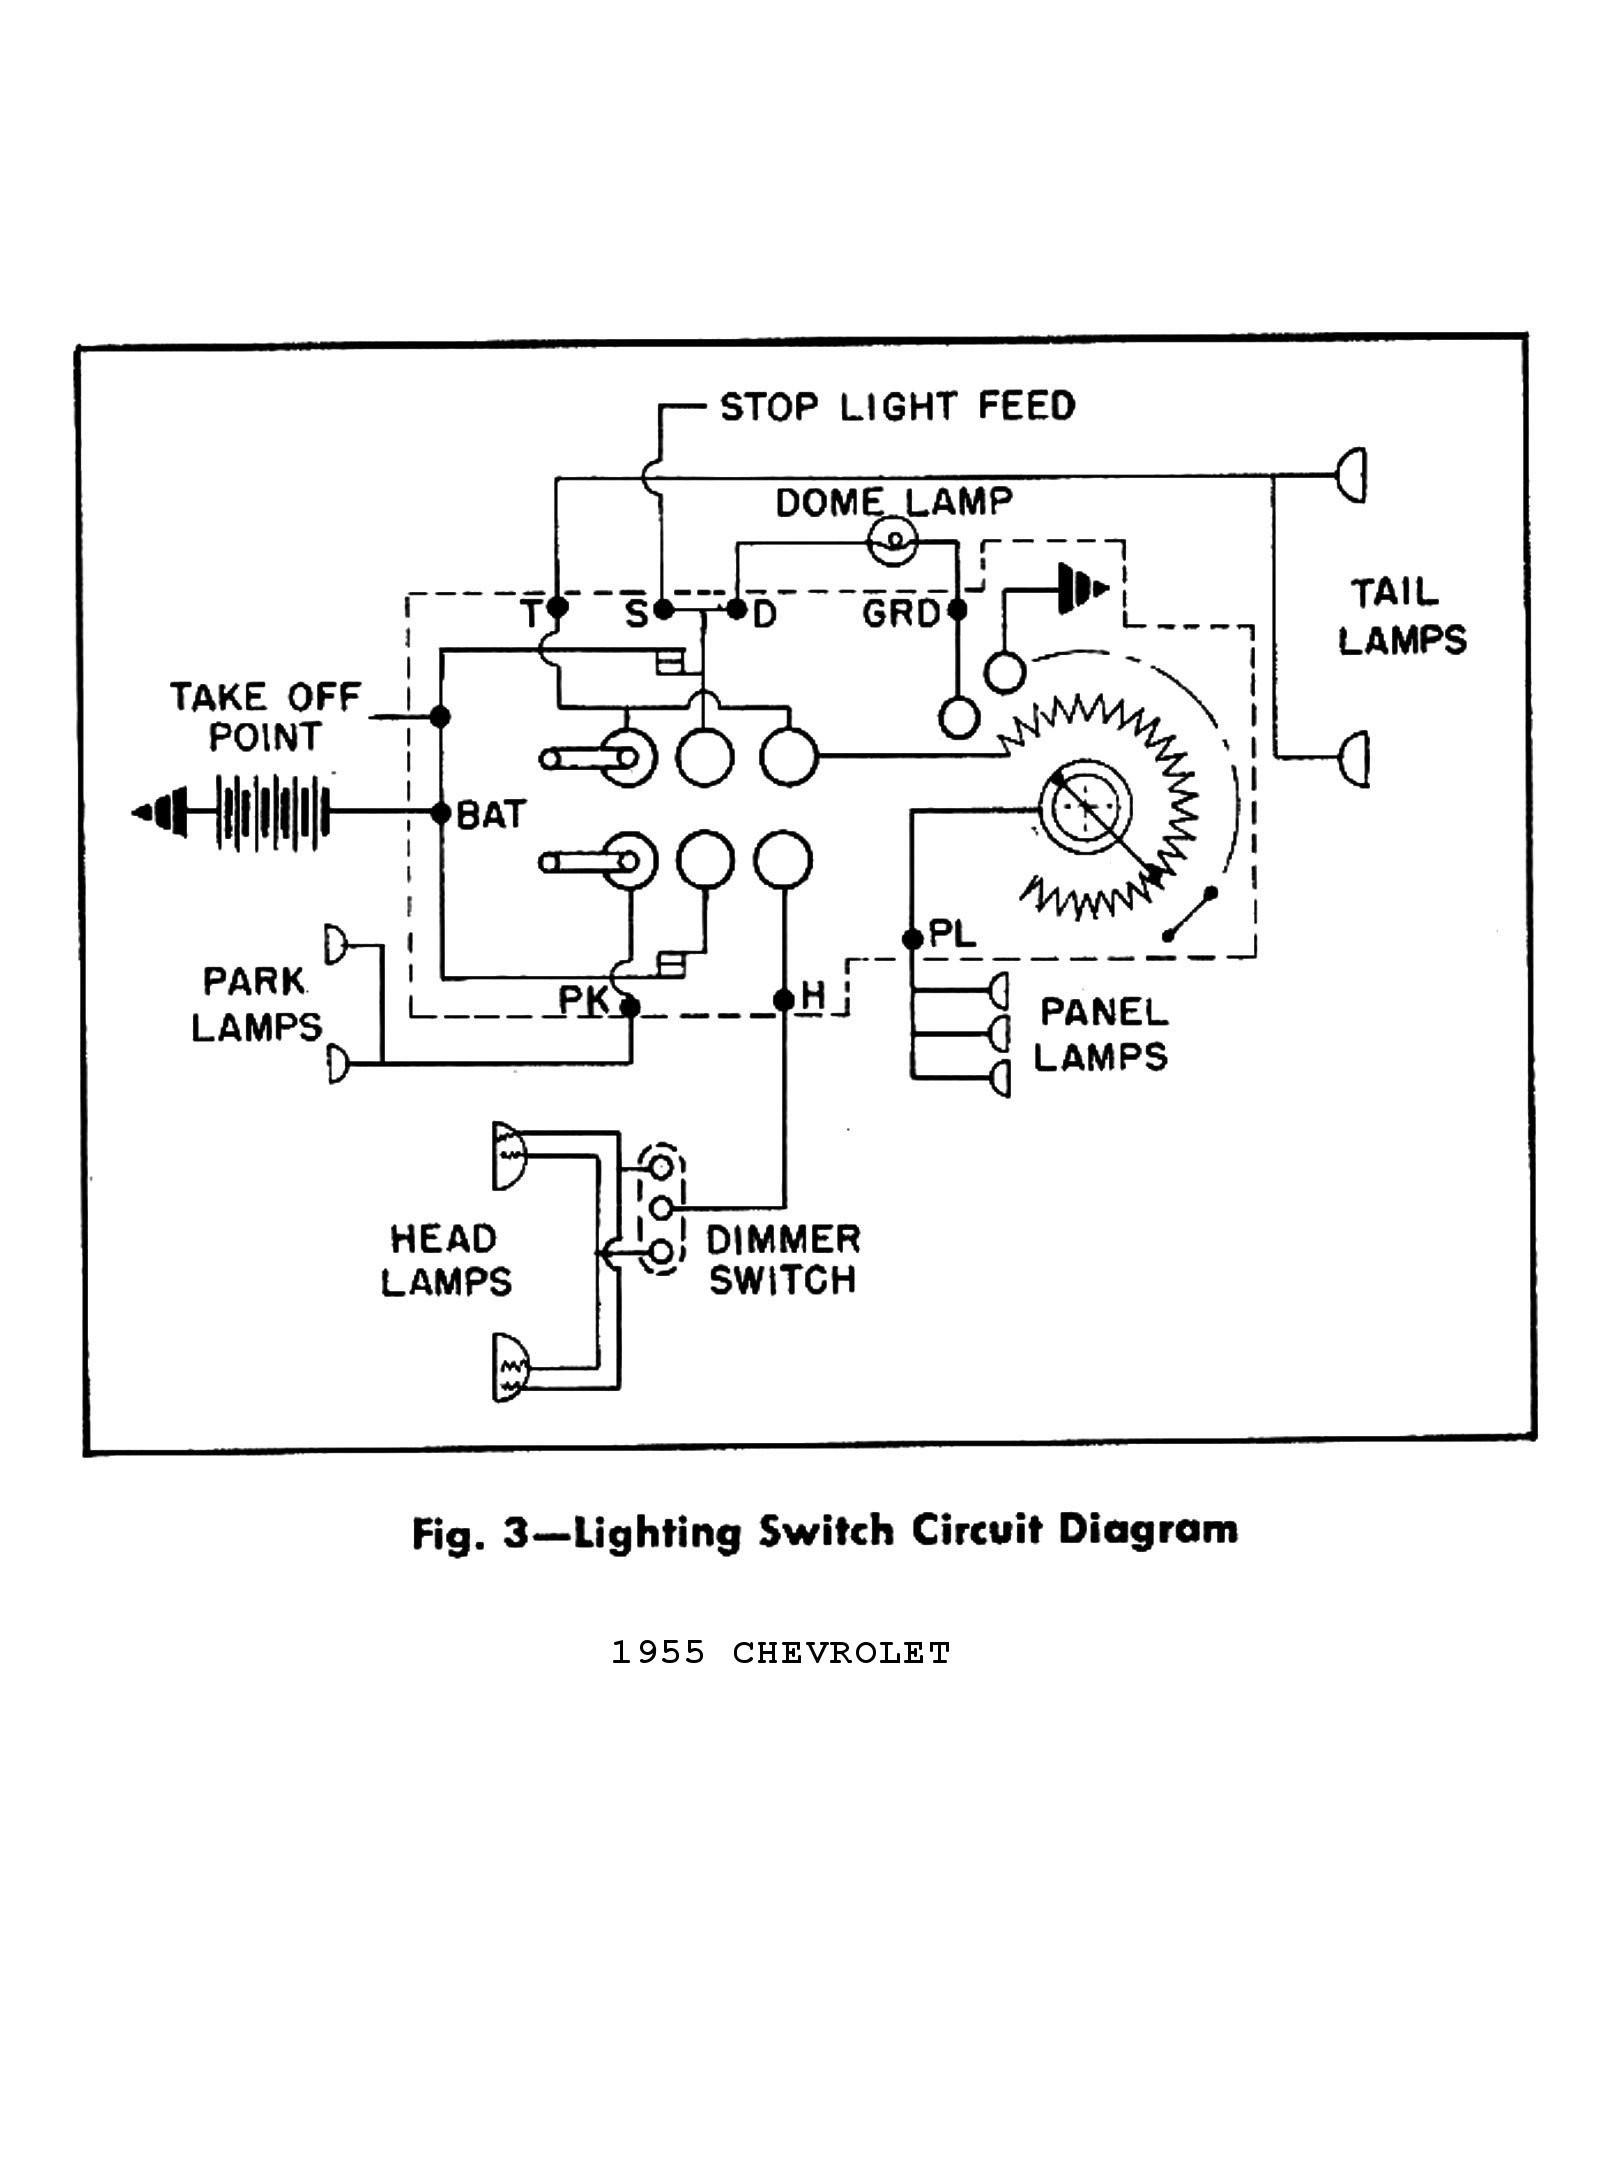 1955 chevy turn signal wiring diagram Download-1956 chevy ignition switch wiring diagram bjzhjy net rh bjzhjy net 1955 chevy bel air ignition switch wiring diagram 1955 chevy ignition switch wiring 5-l